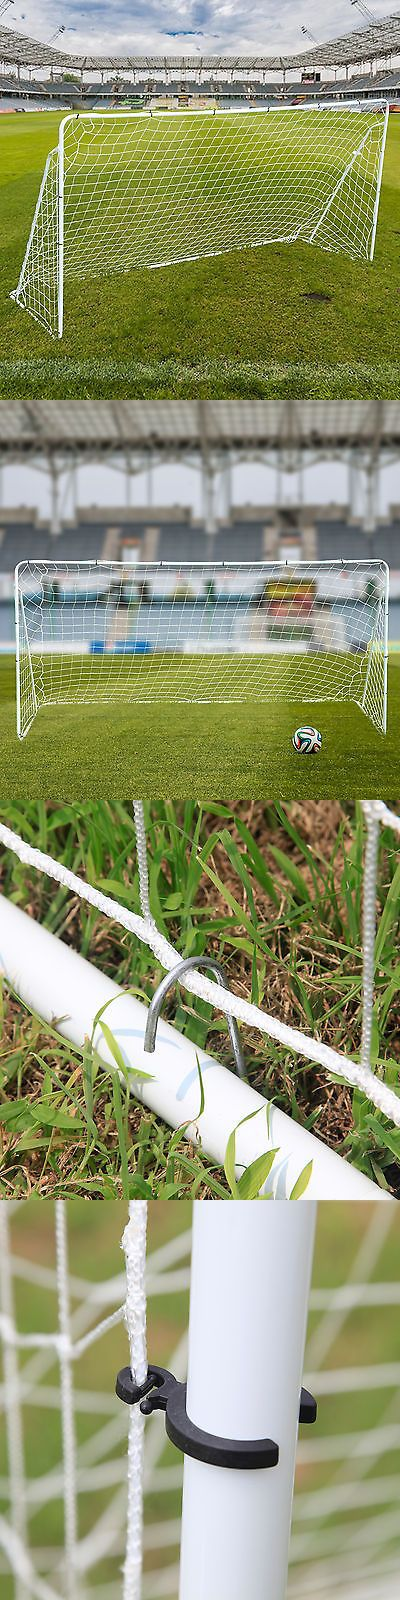 Goals and Nets 159180: Portable Soccer Goal 12 X 6 Football W/Net Straps Anchors Ball Training Sets BUY IT NOW ONLY: $44.9